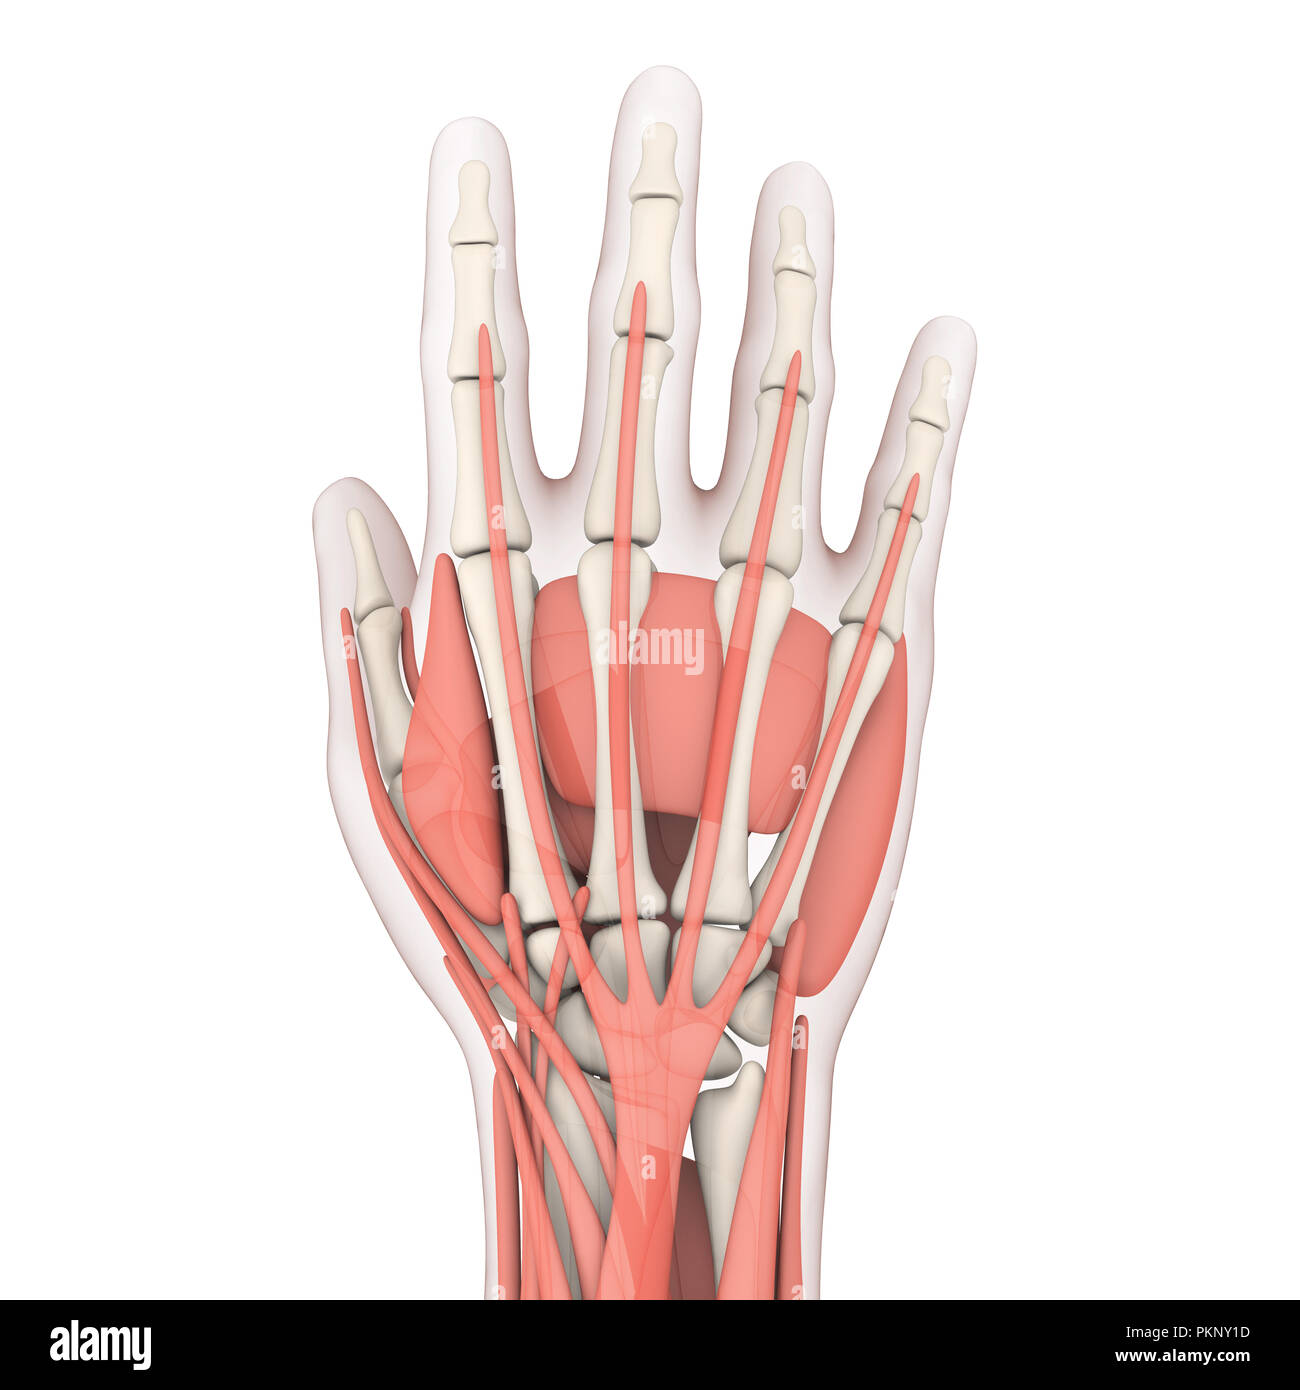 Human Fingers Anatomy Stock Photos Human Fingers Anatomy Stock